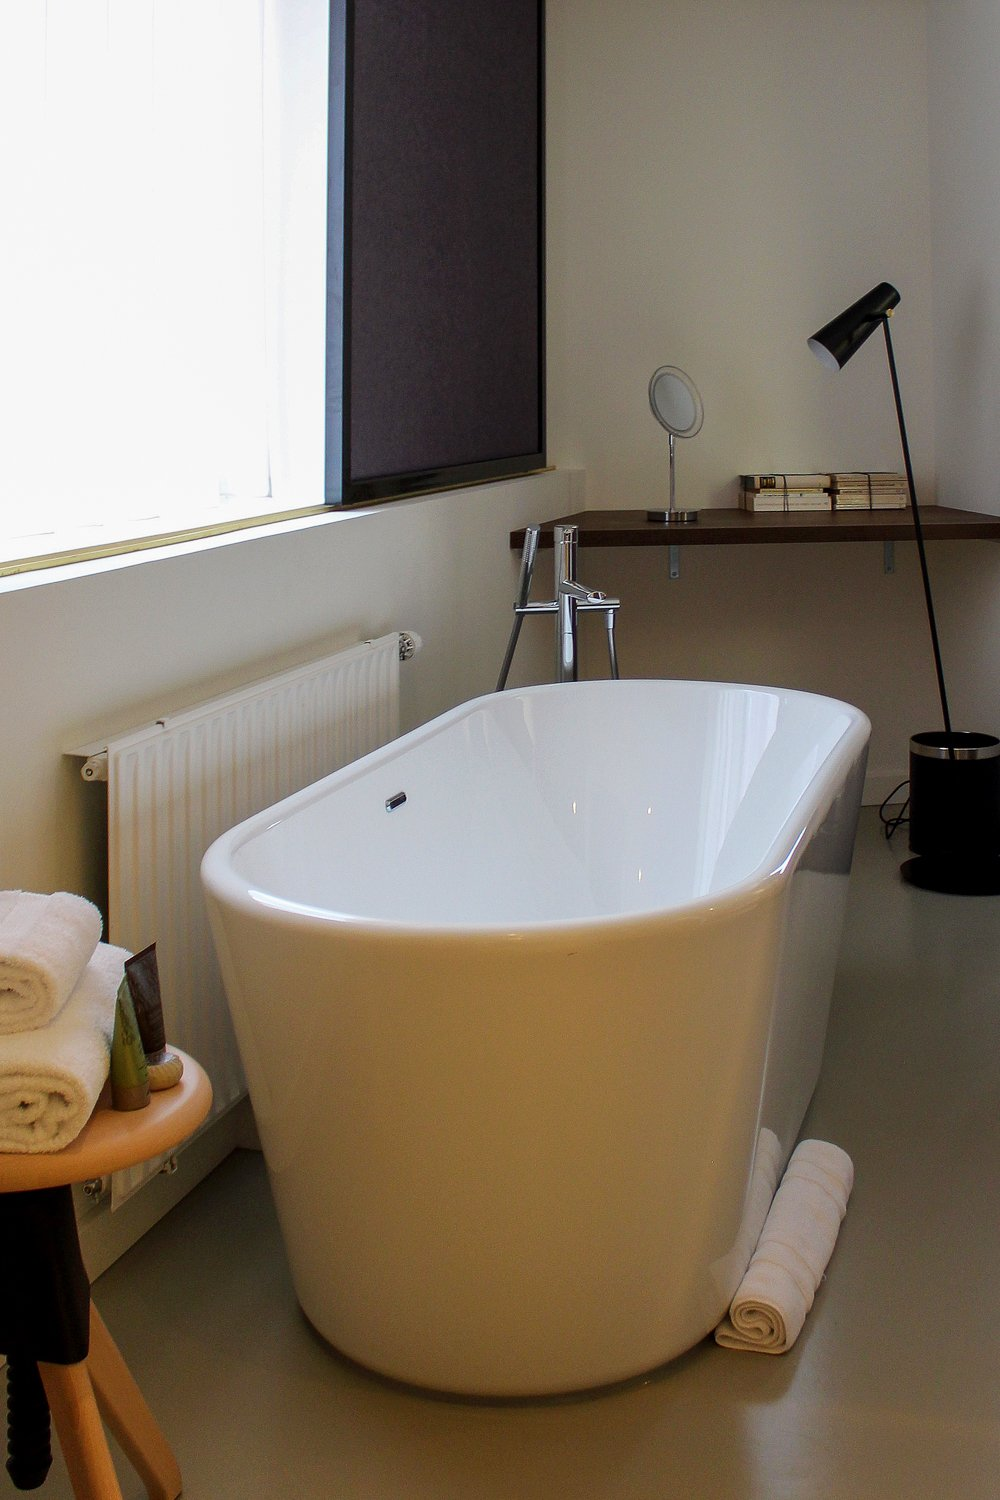 Designer bathtub at the Printer Suite of the Ink Hotel Amsterdam